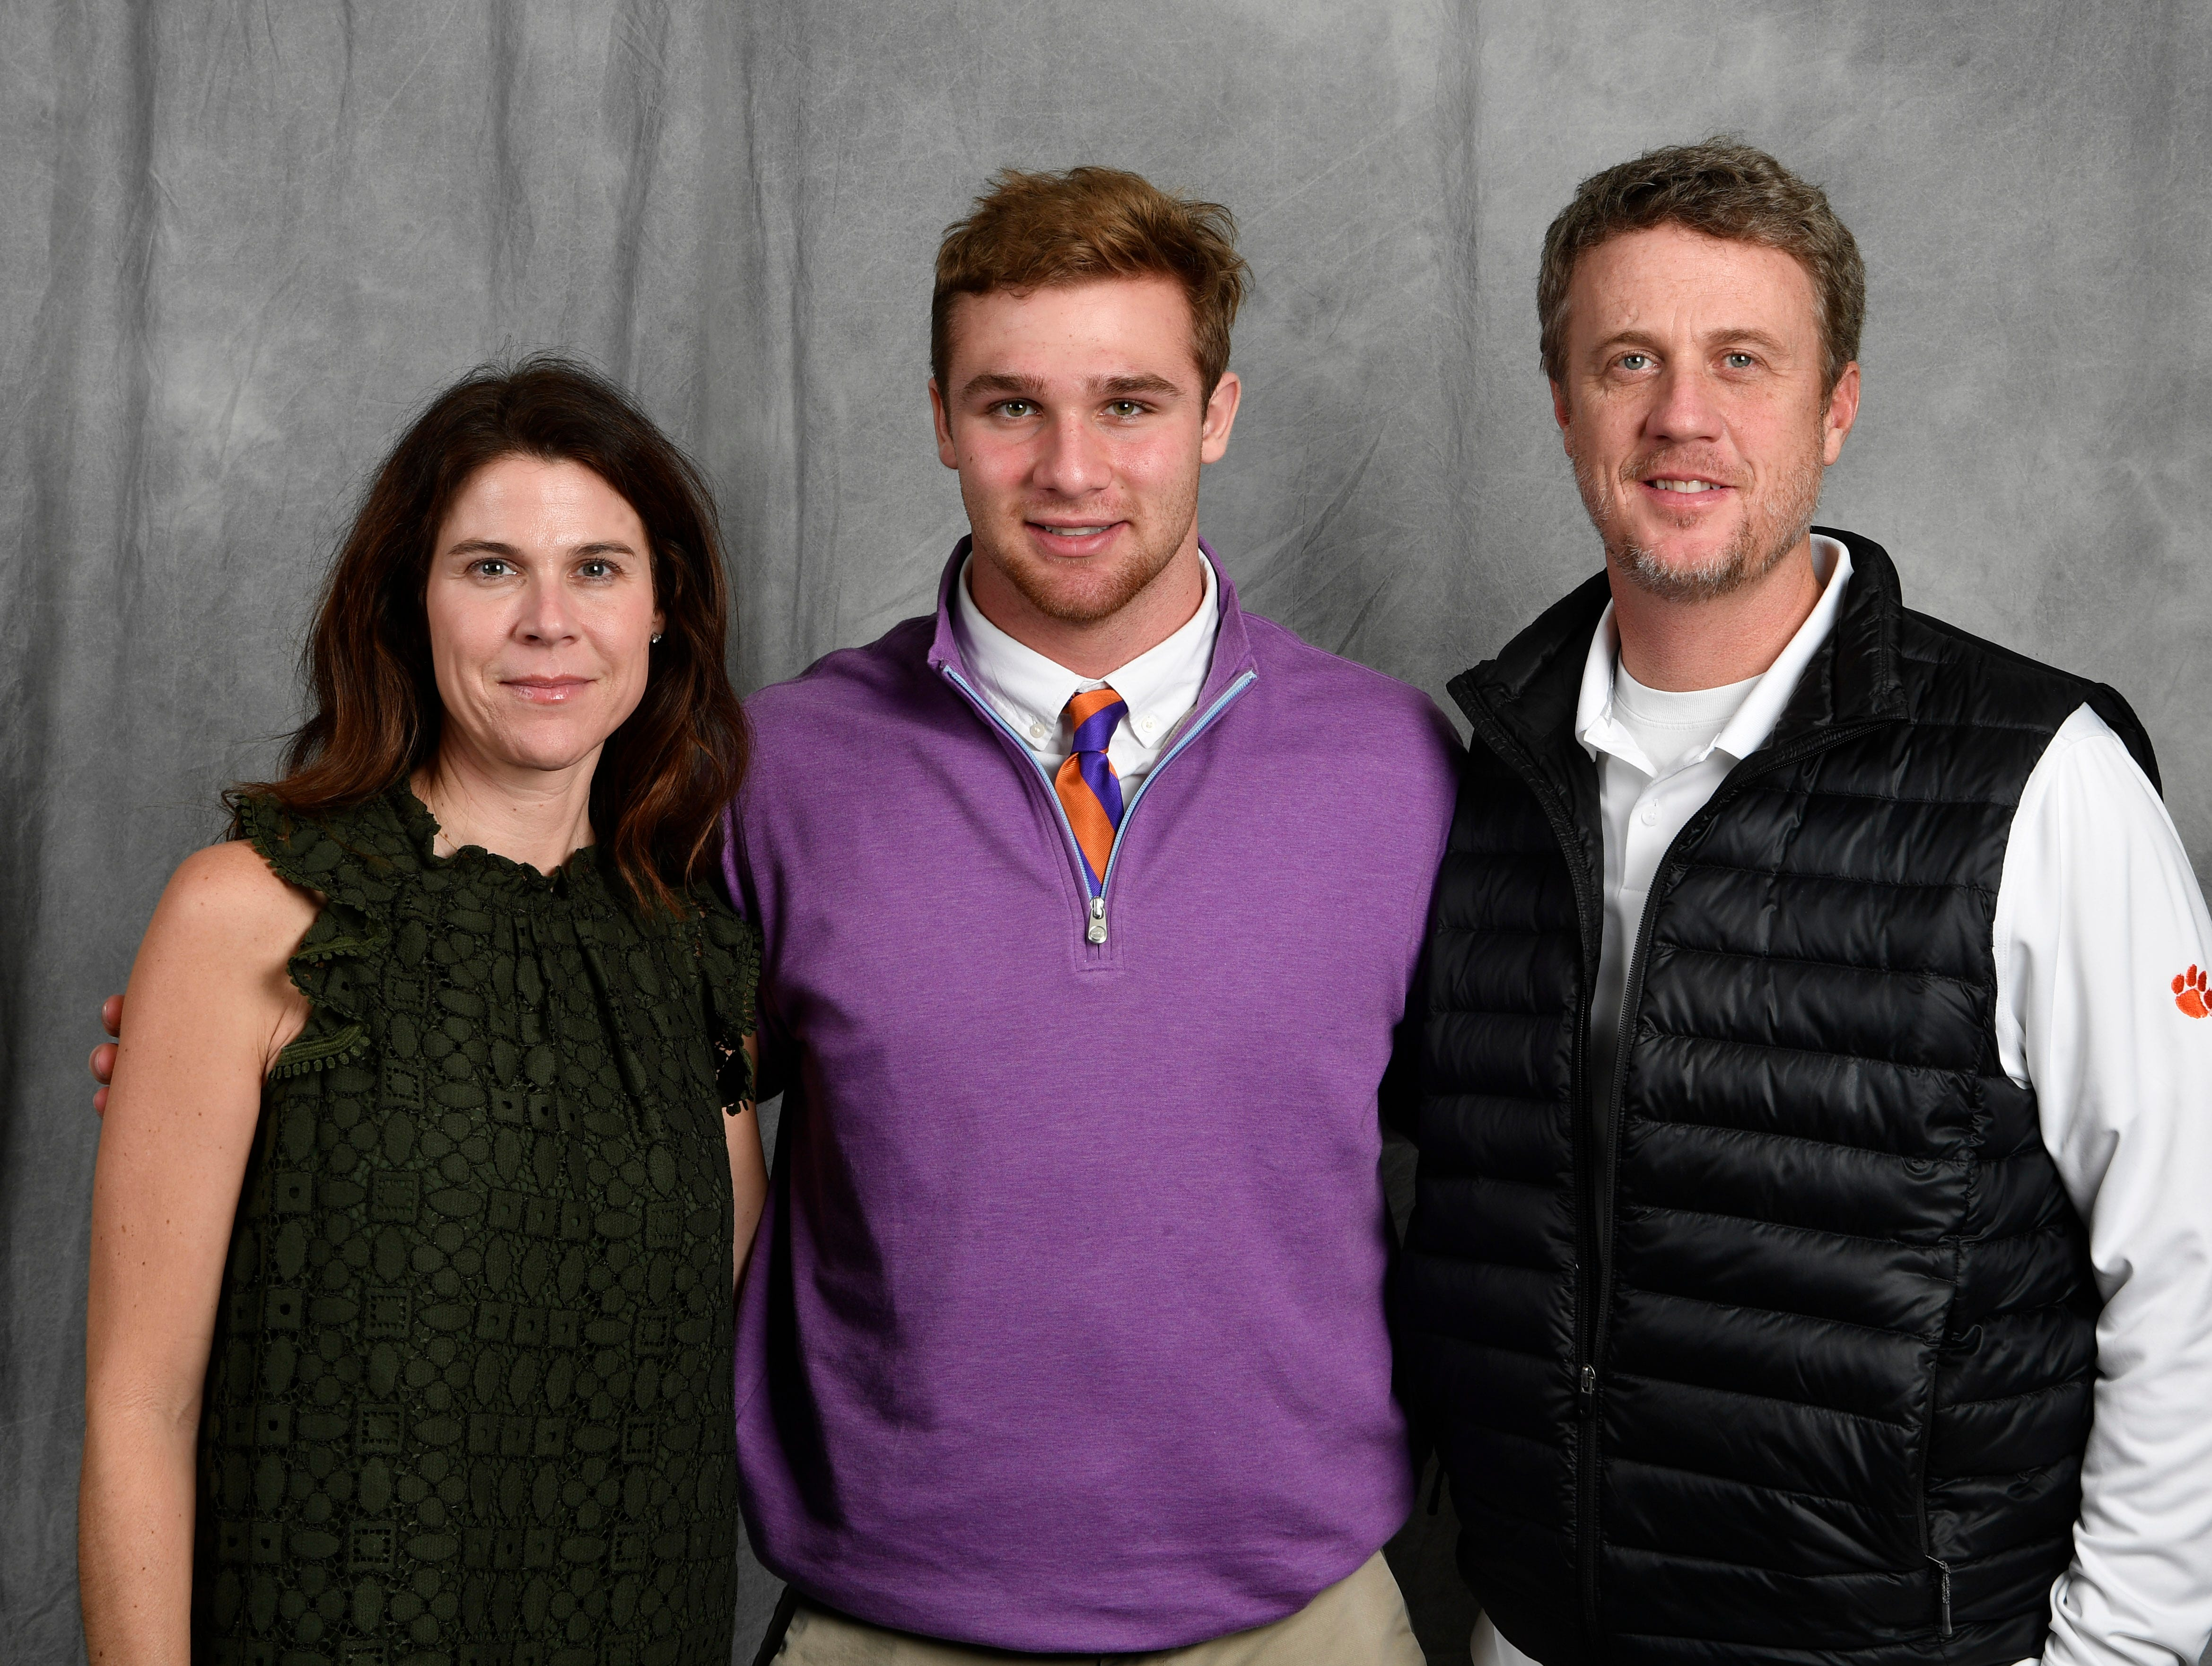 CPA senior Kane Patterson poses with his parents Camille and Wes Patterson Wednesday in the Tennessean's photo booth.